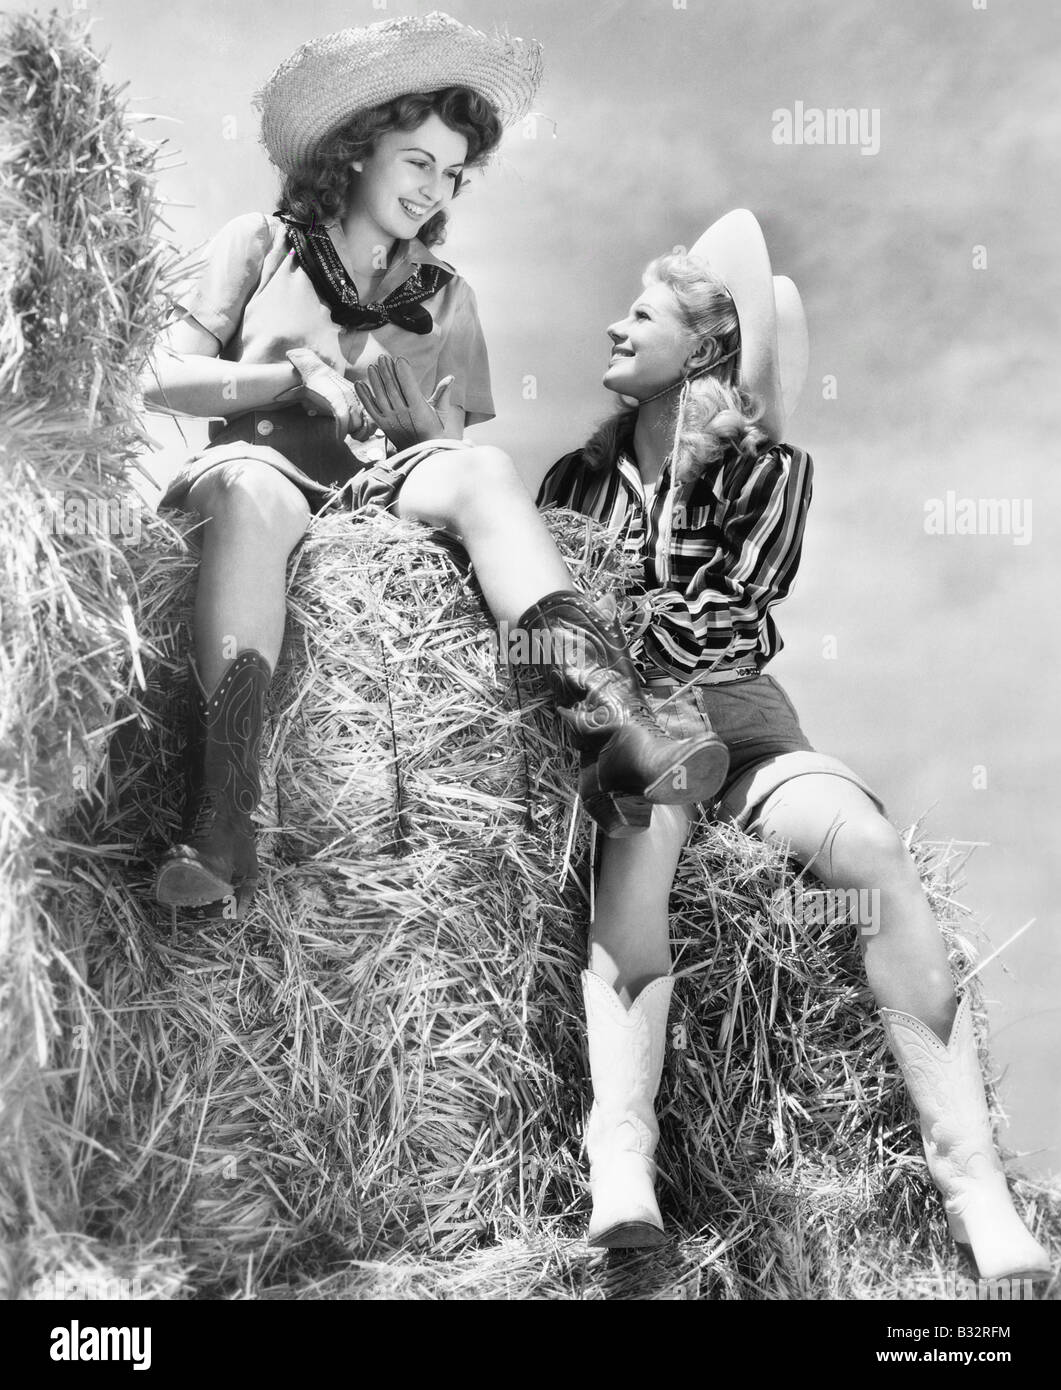 Two women in cowboy hats sitting on a haystack - Stock Image